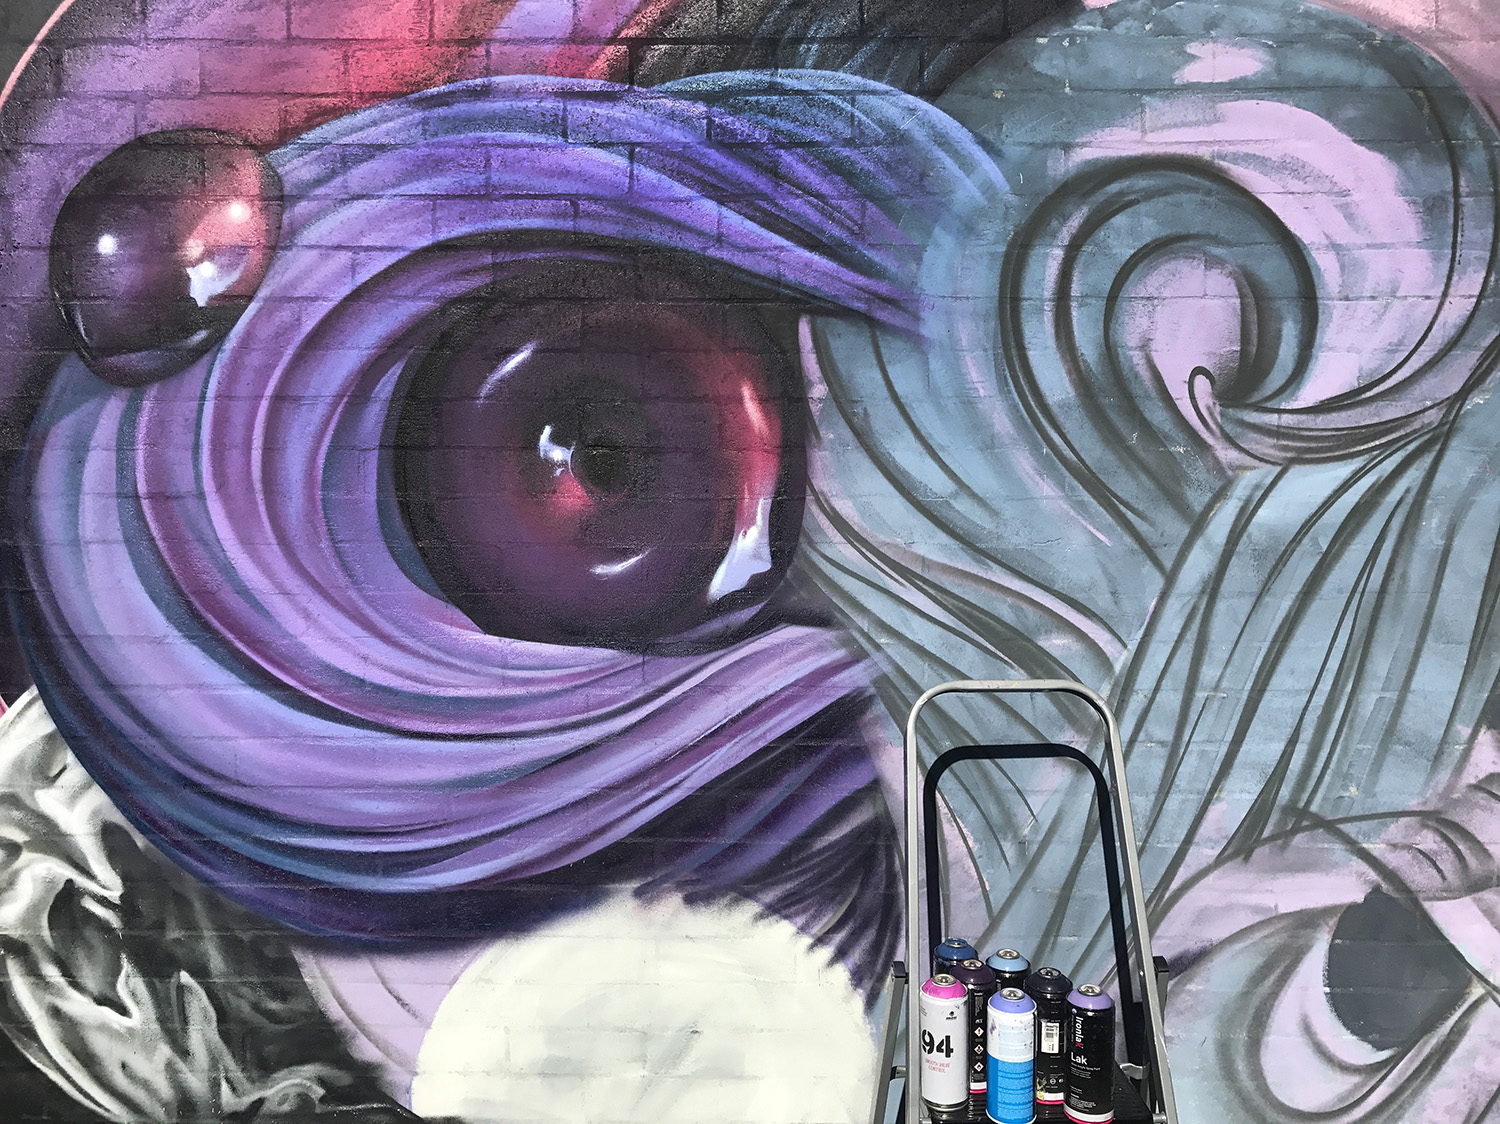 Swirls and reflections. Mural work in progress